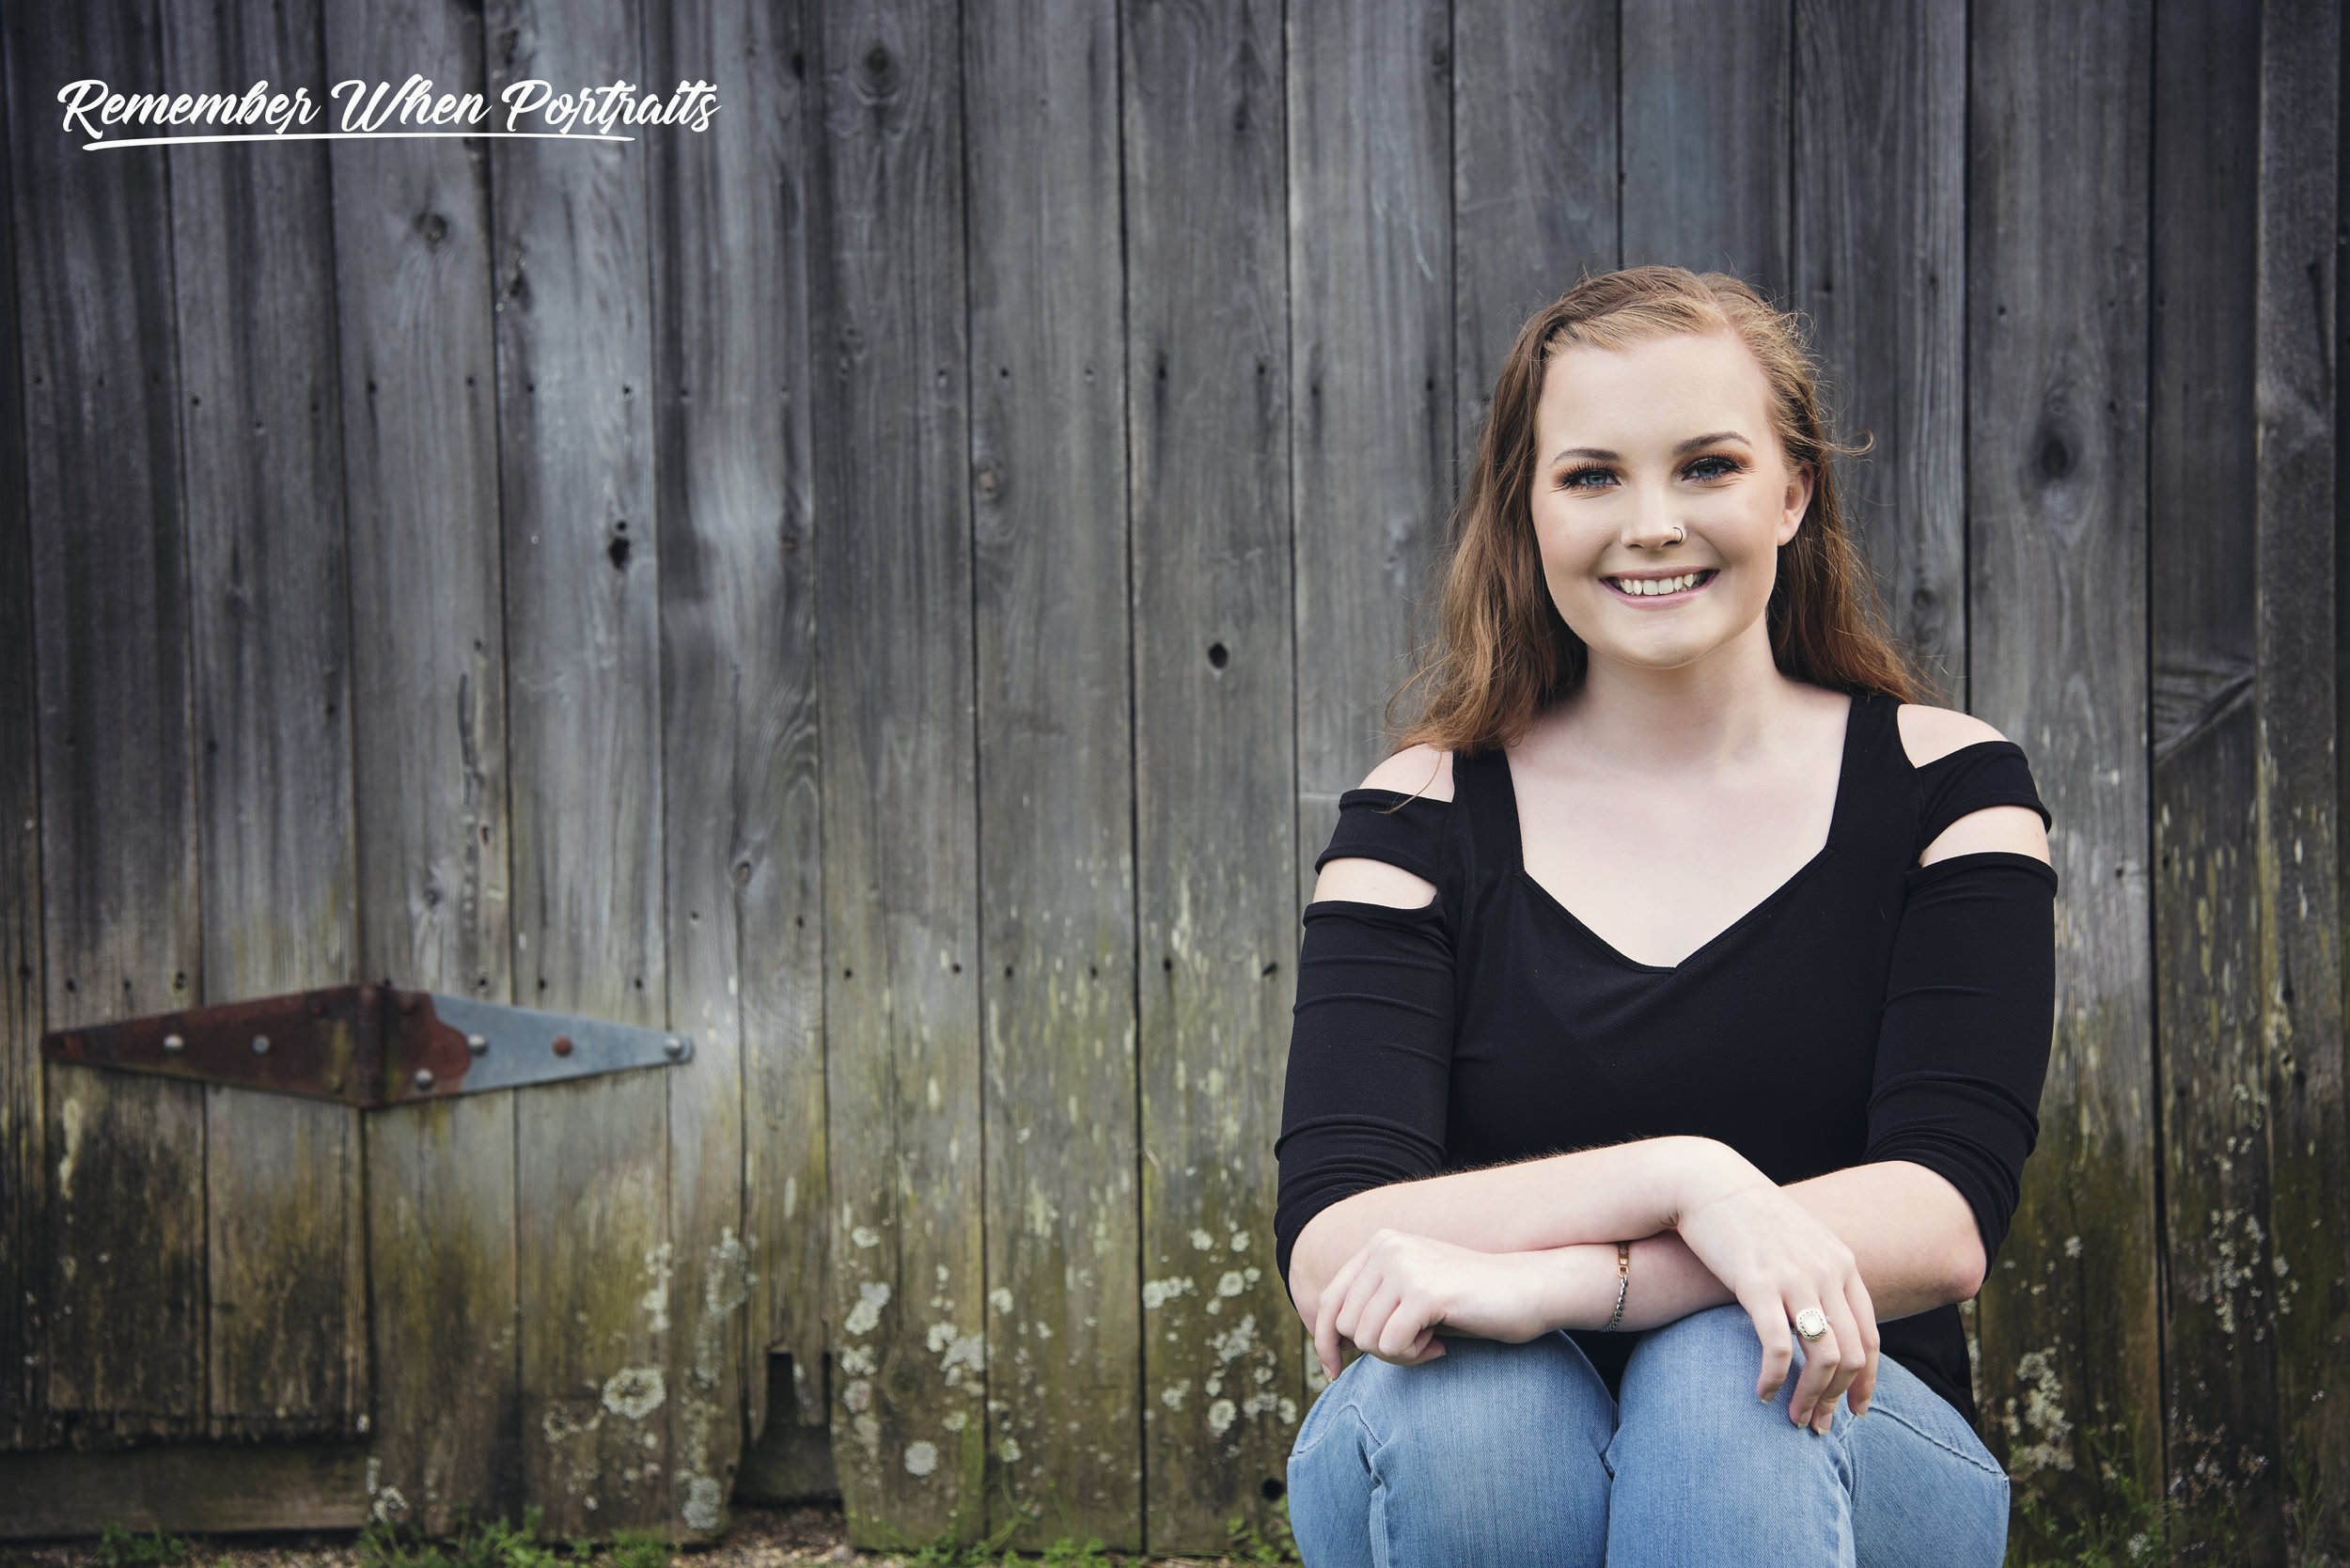 Mia Turner Class of 2020 Senior Photos Cincinnati Ohio Hamilton High School Remember When Portraits